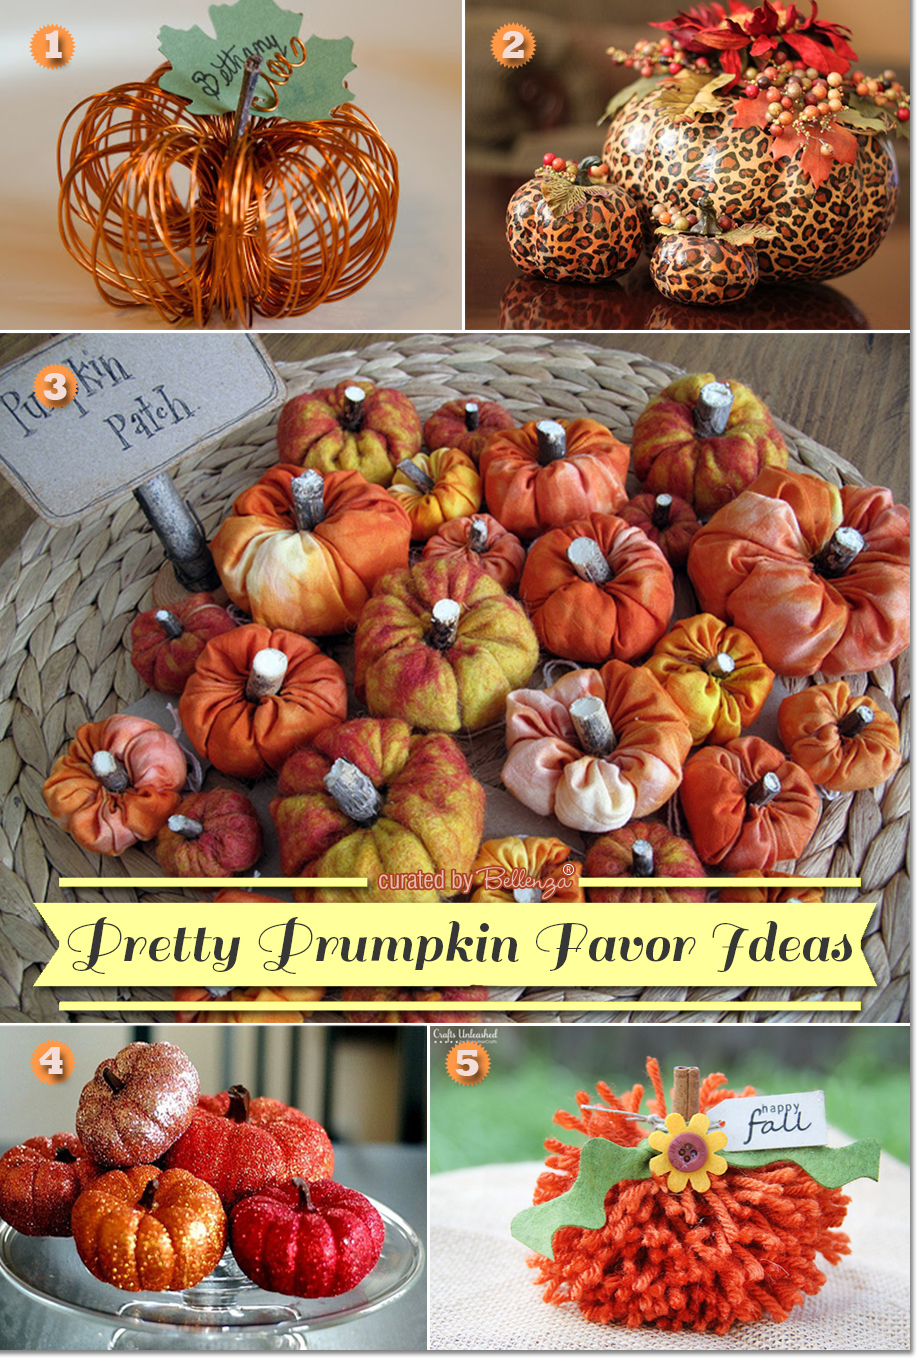 Pumpkin Favors Ideas with Pin Cushions, Wire Place Card Holders, Glitter Pumpkins, and Fabric Paper Weights